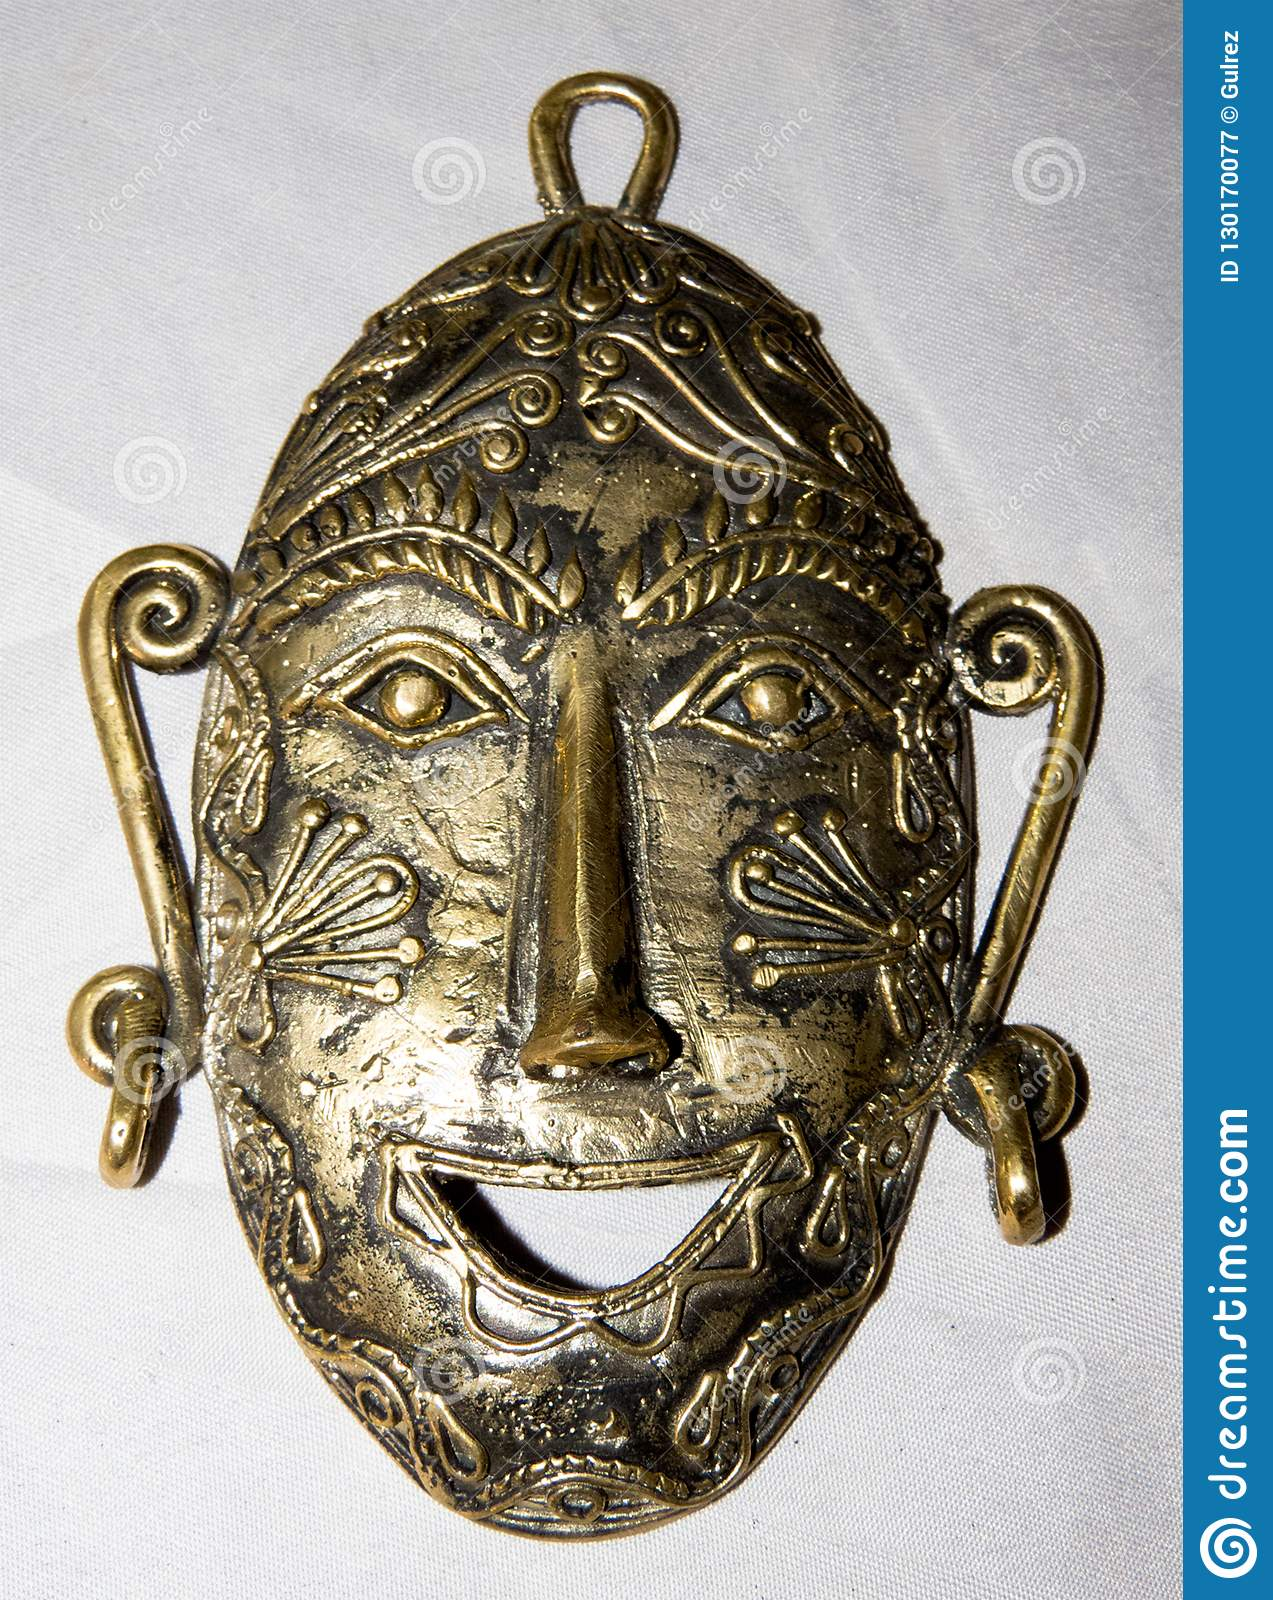 Mask made of brass metal handcrafted